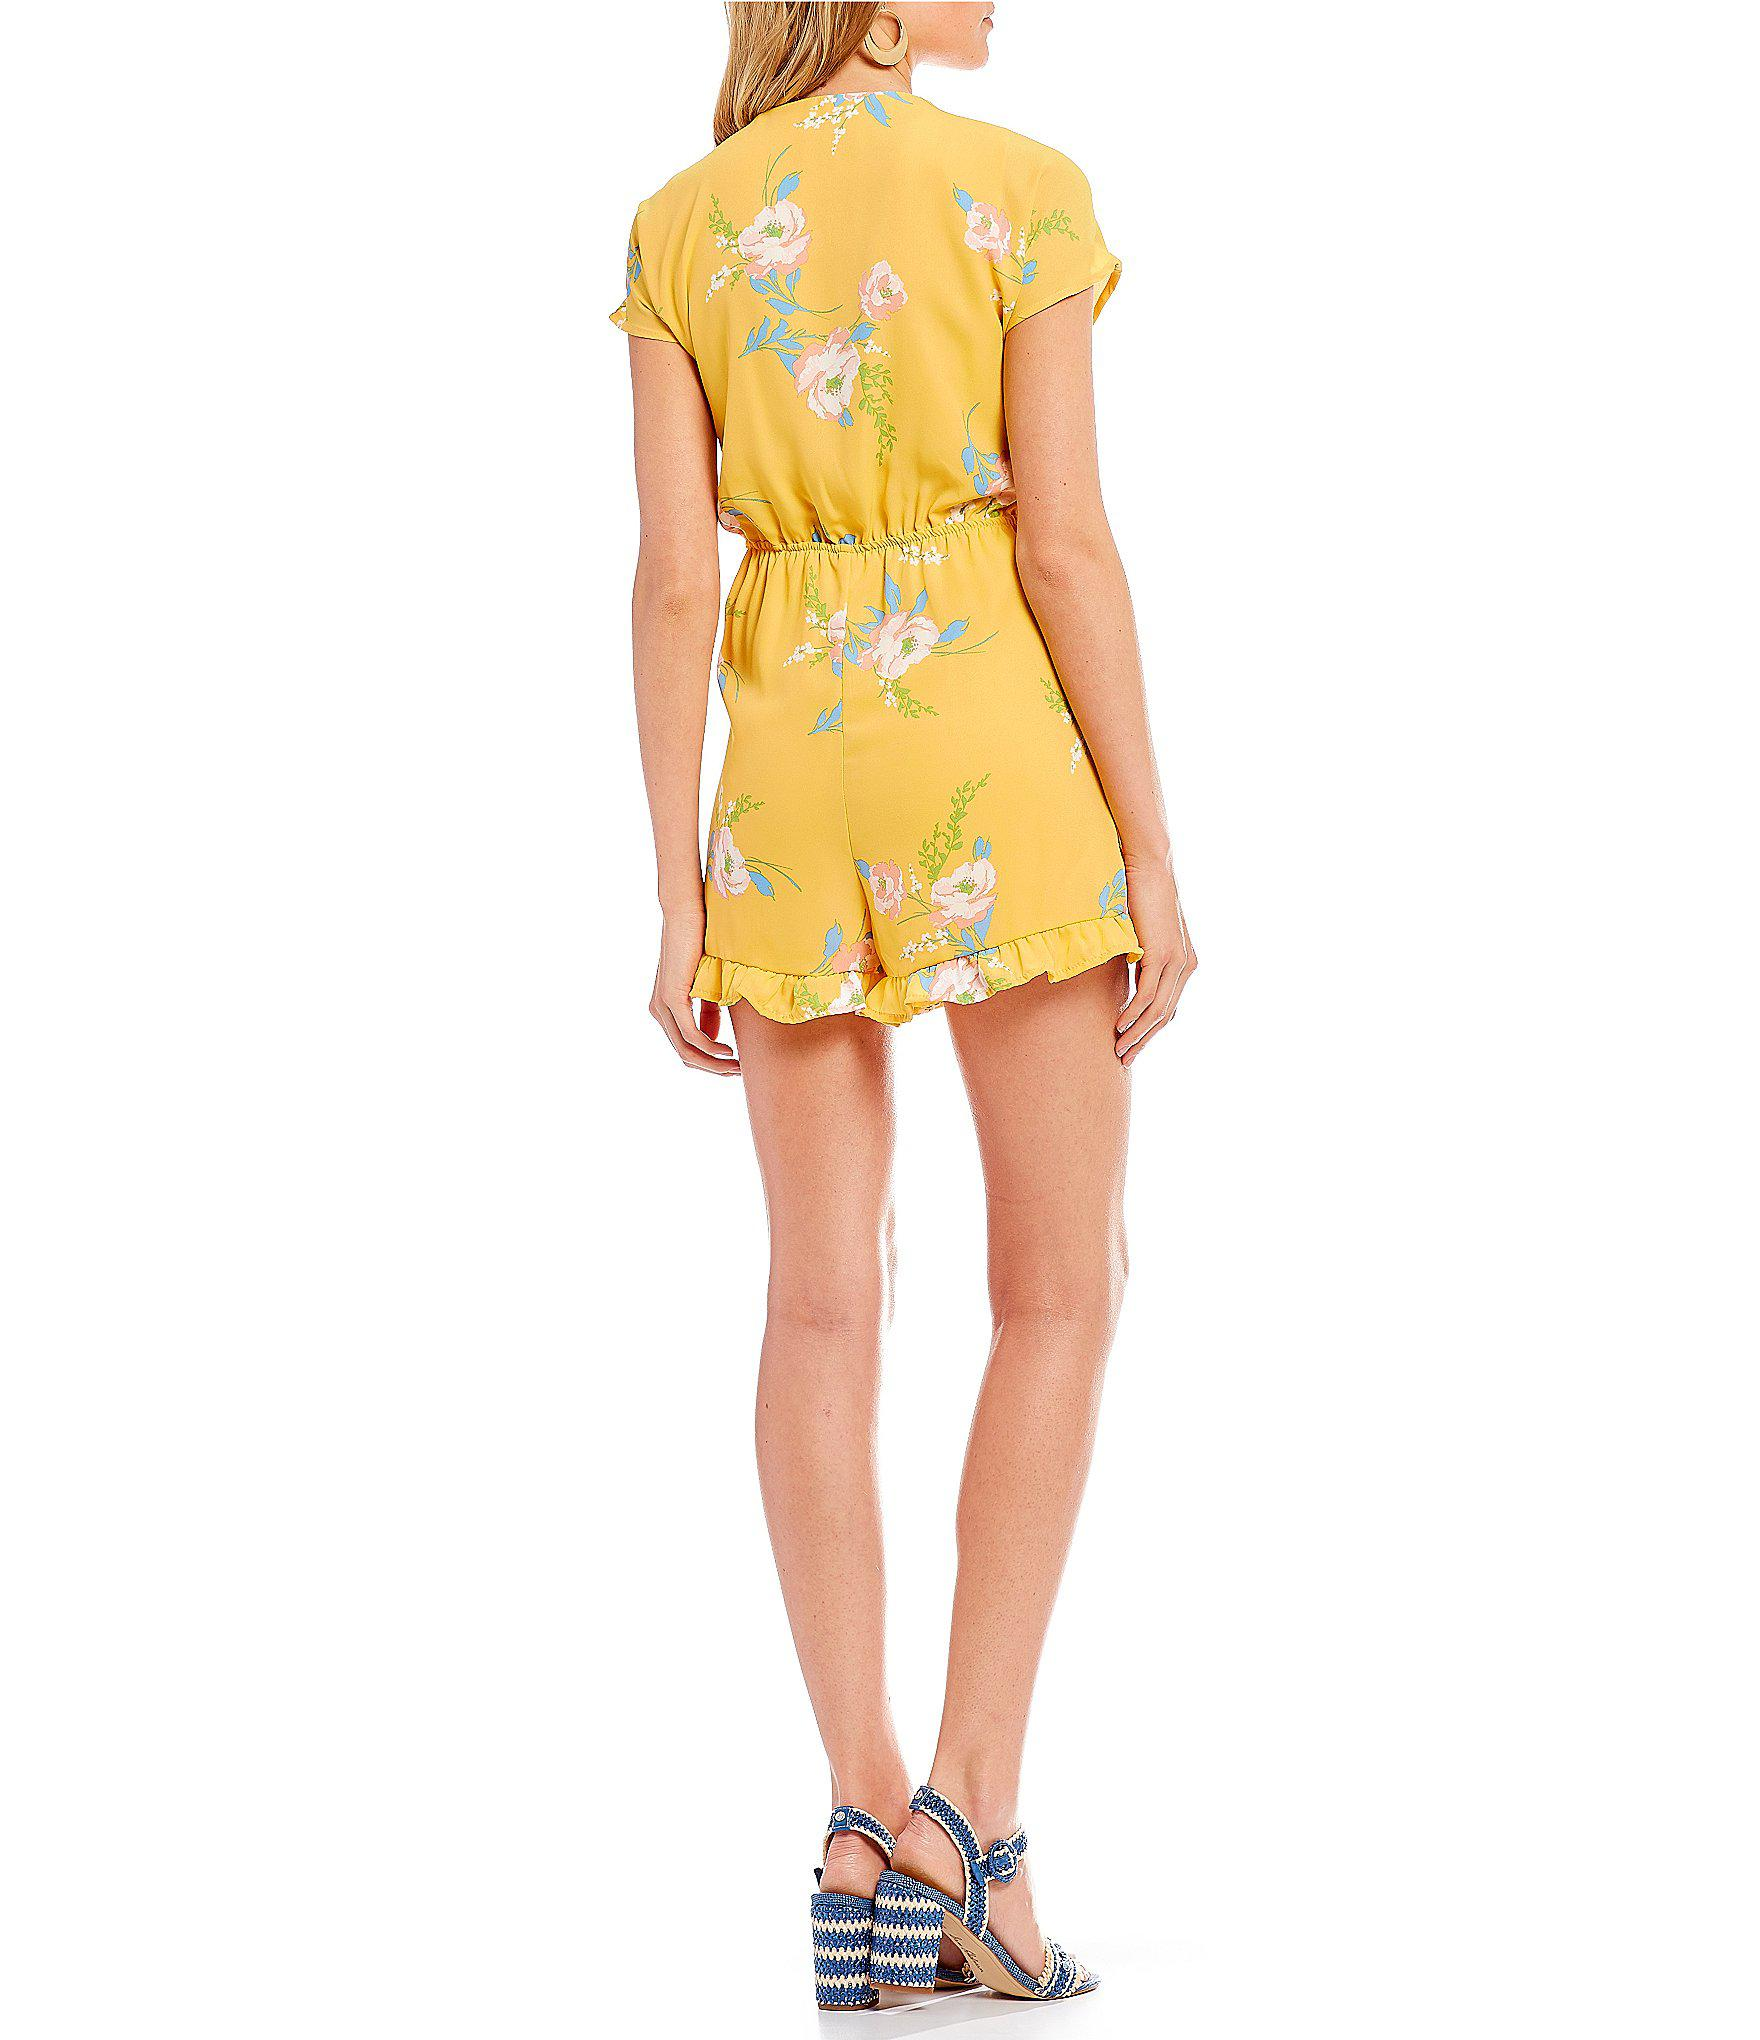 41347bf3b9f8 Lyst - June   Hudson June And Hudson Tie Front Romper in Yellow